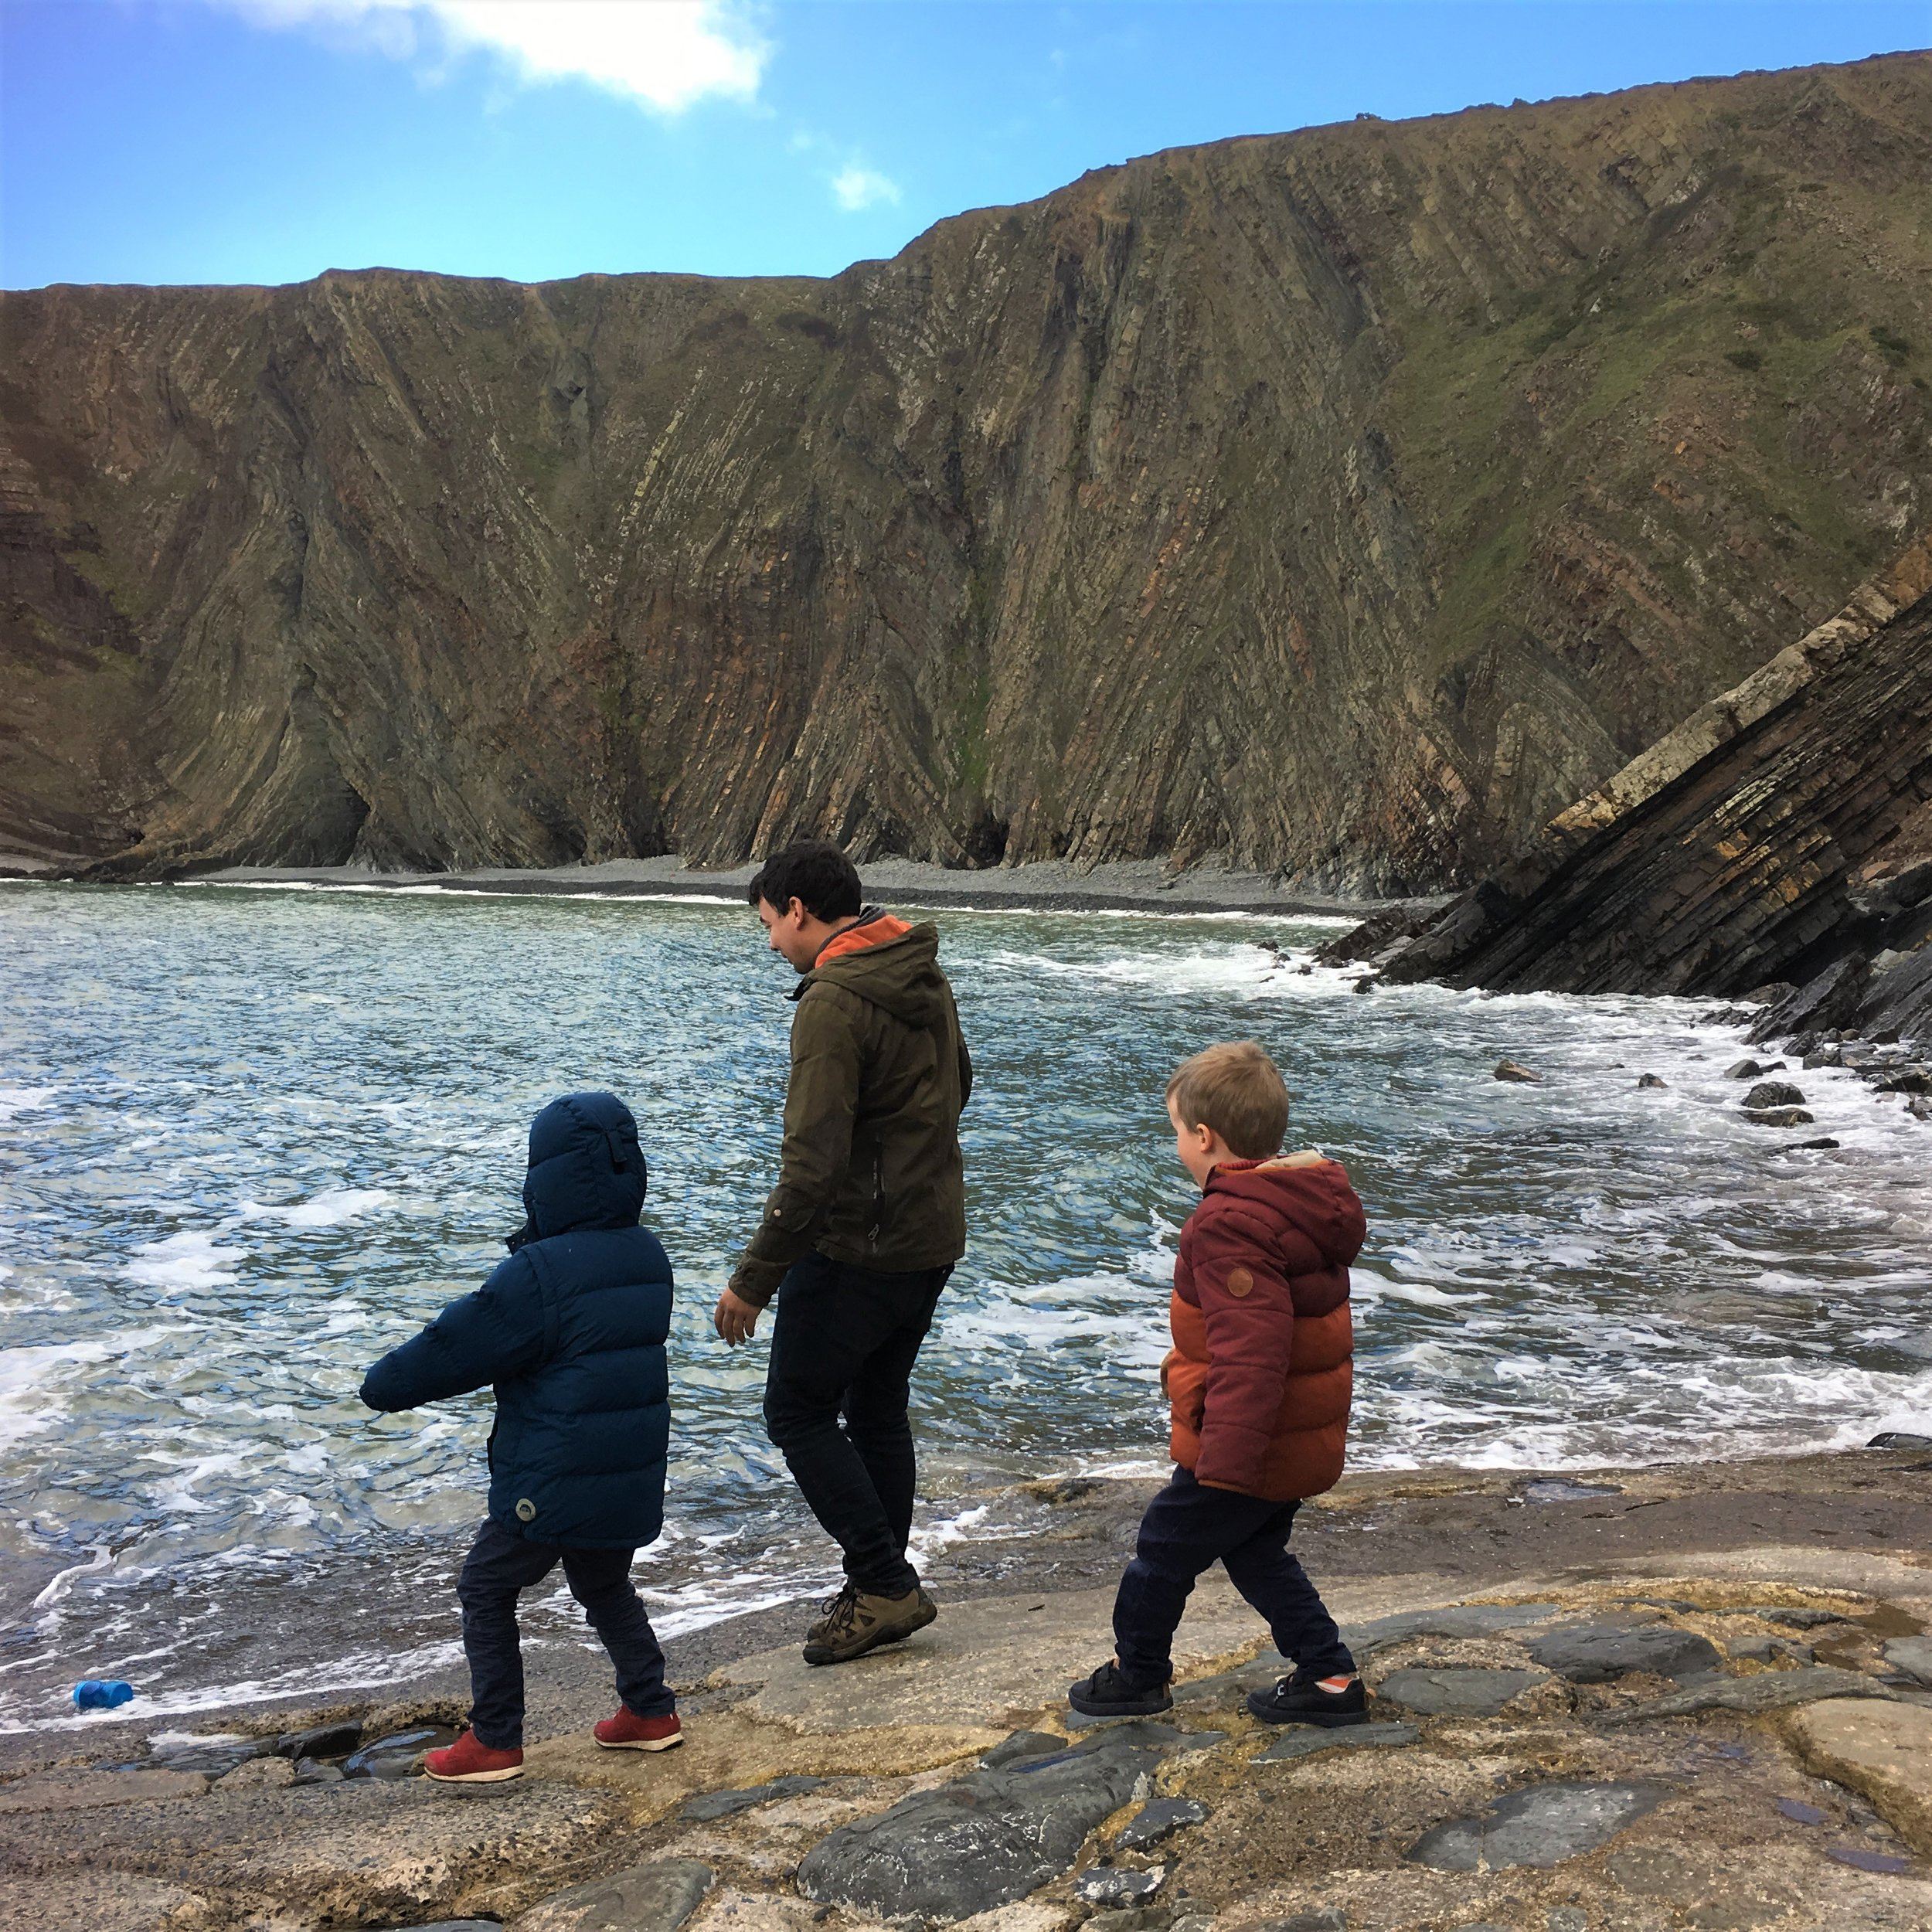 Getting children out in nature in the autumn